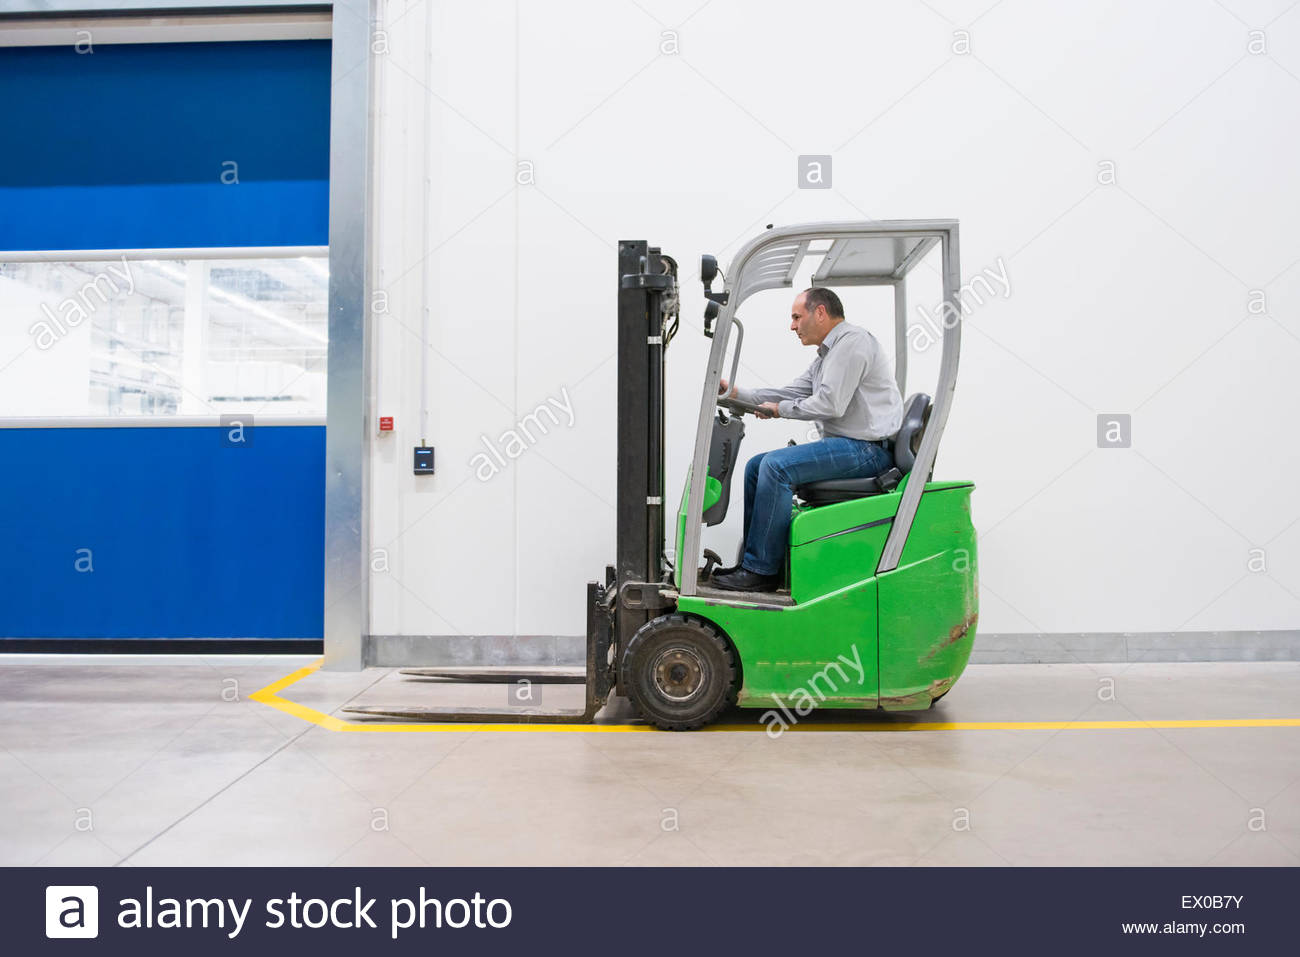 Man driving forklift truck in factory corridor - Stock Image